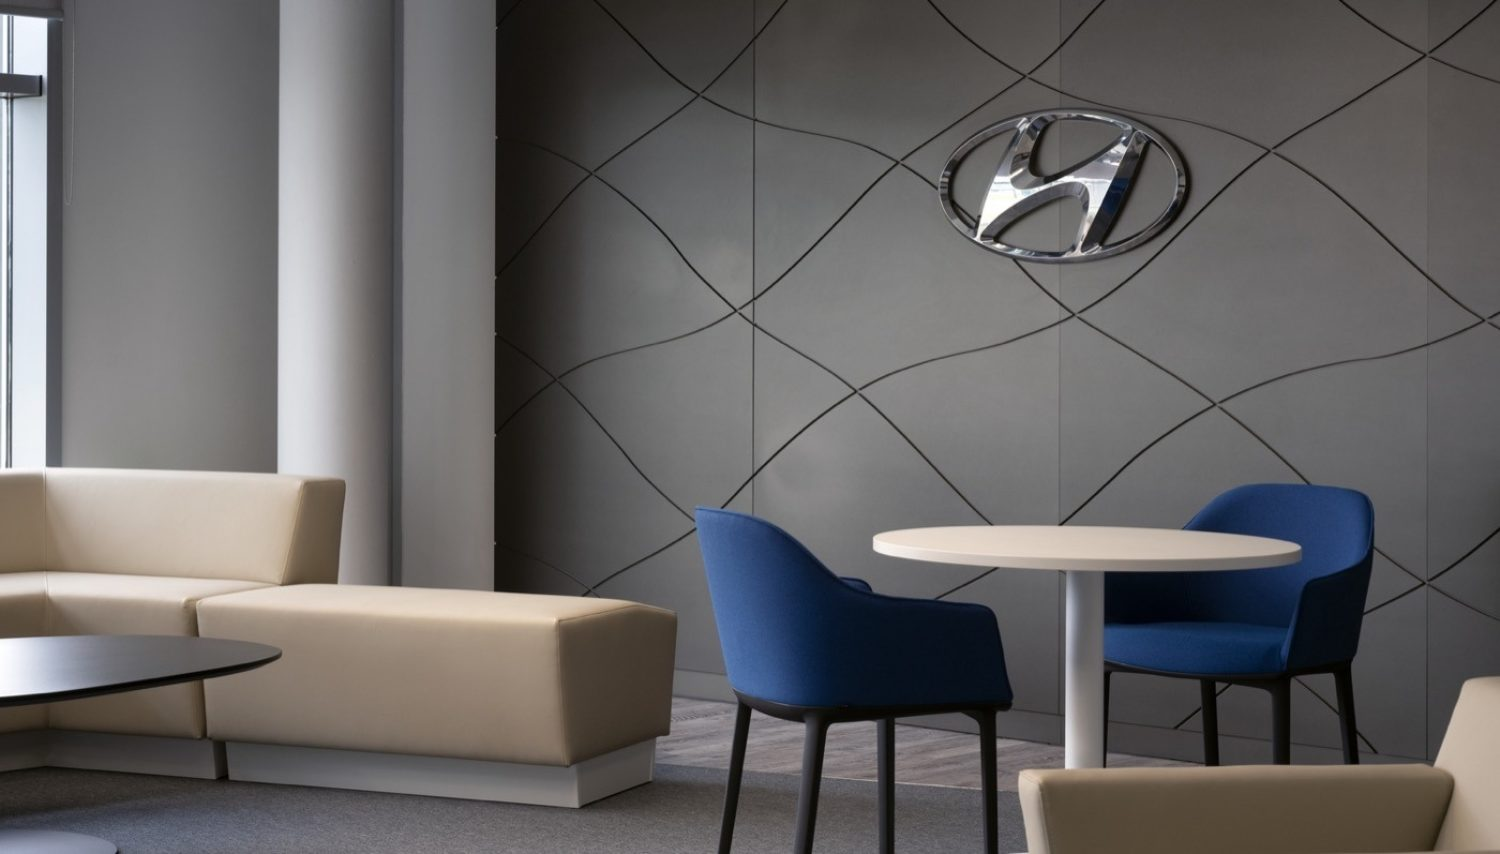 Hyundai interior design textured wall covering